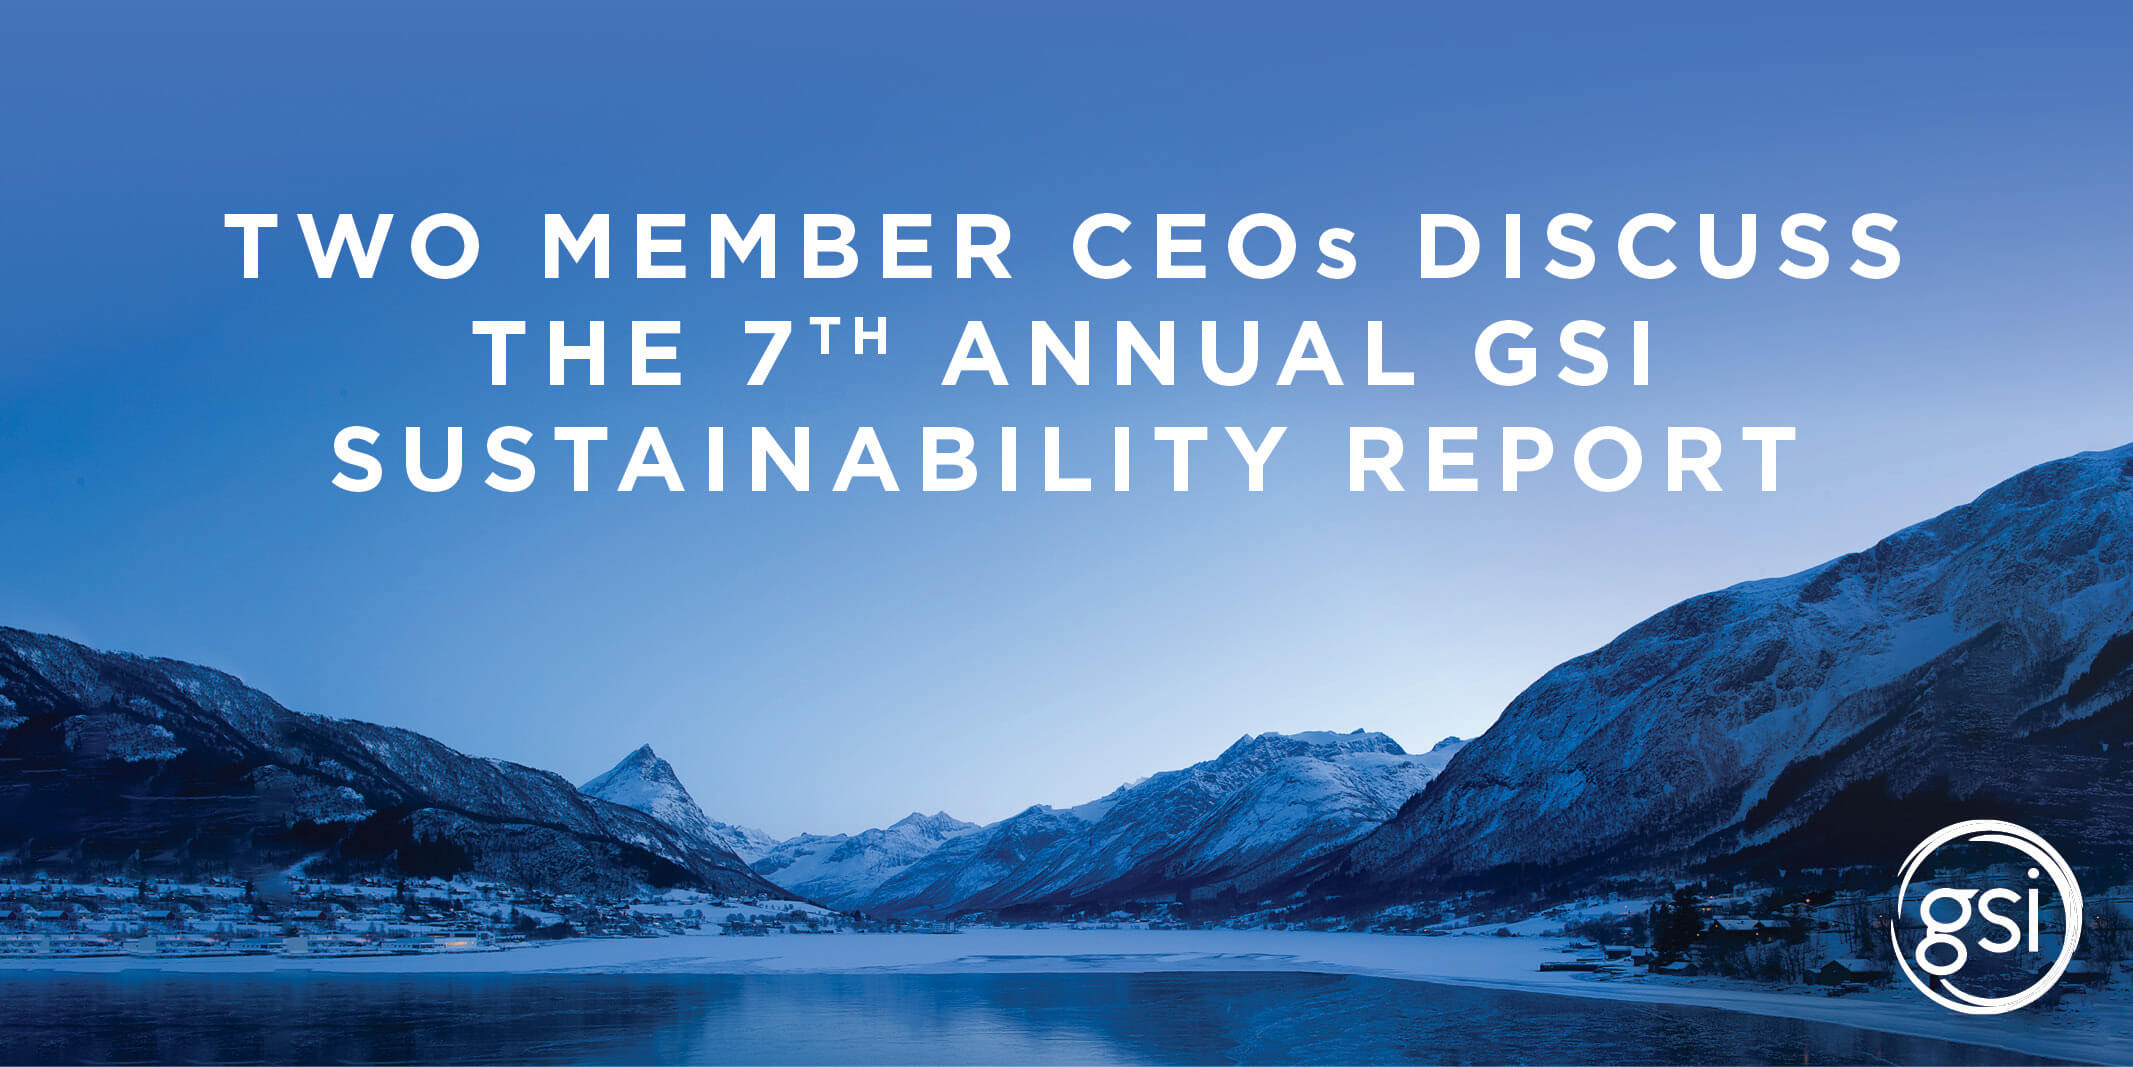 Gsi Blog 7Th Annual Gsisustainability Report 1024X512 June4 20202